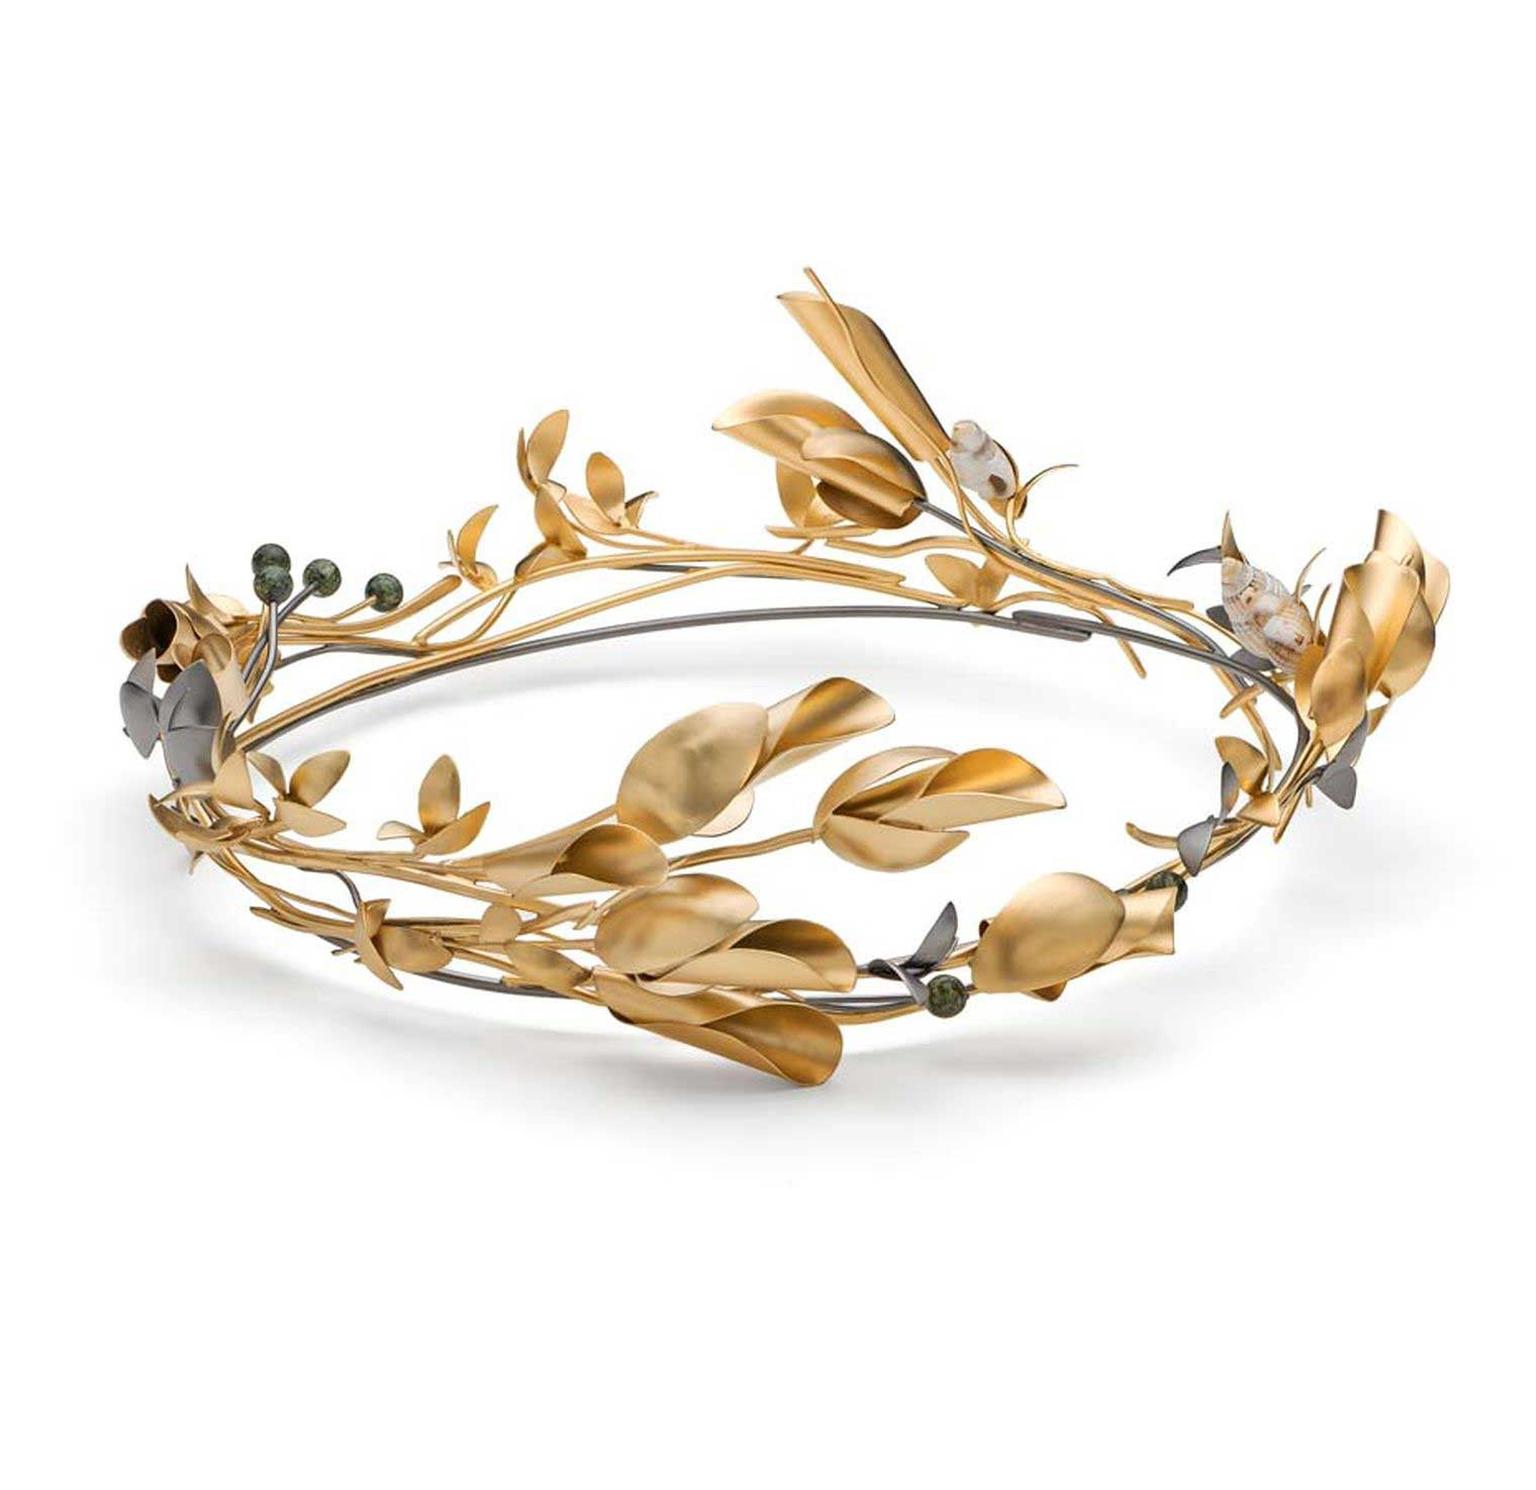 Mirri Damer gold leaf tiara